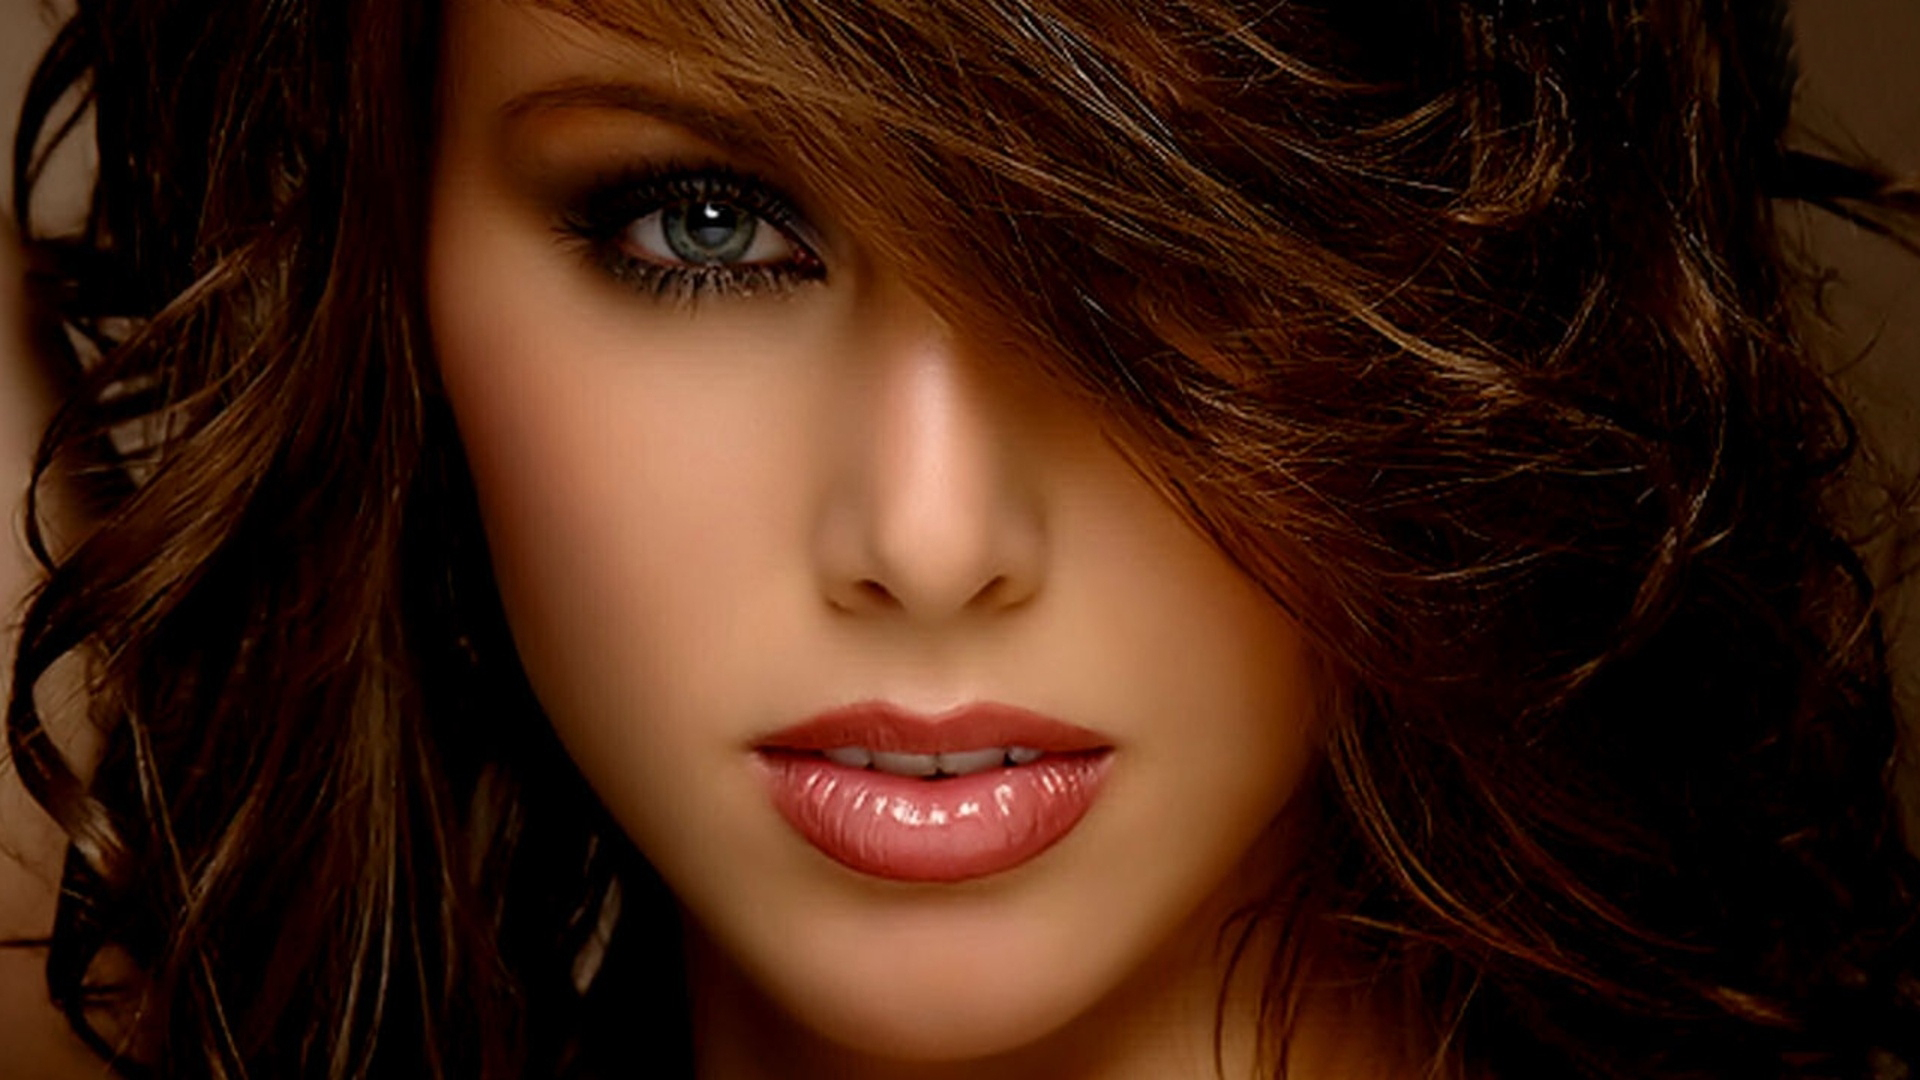 faces face wallpapers female pretty desktop eyes looking backgrounds amazing makeup beauty related wallpapersafari hair phone px resolution attractive